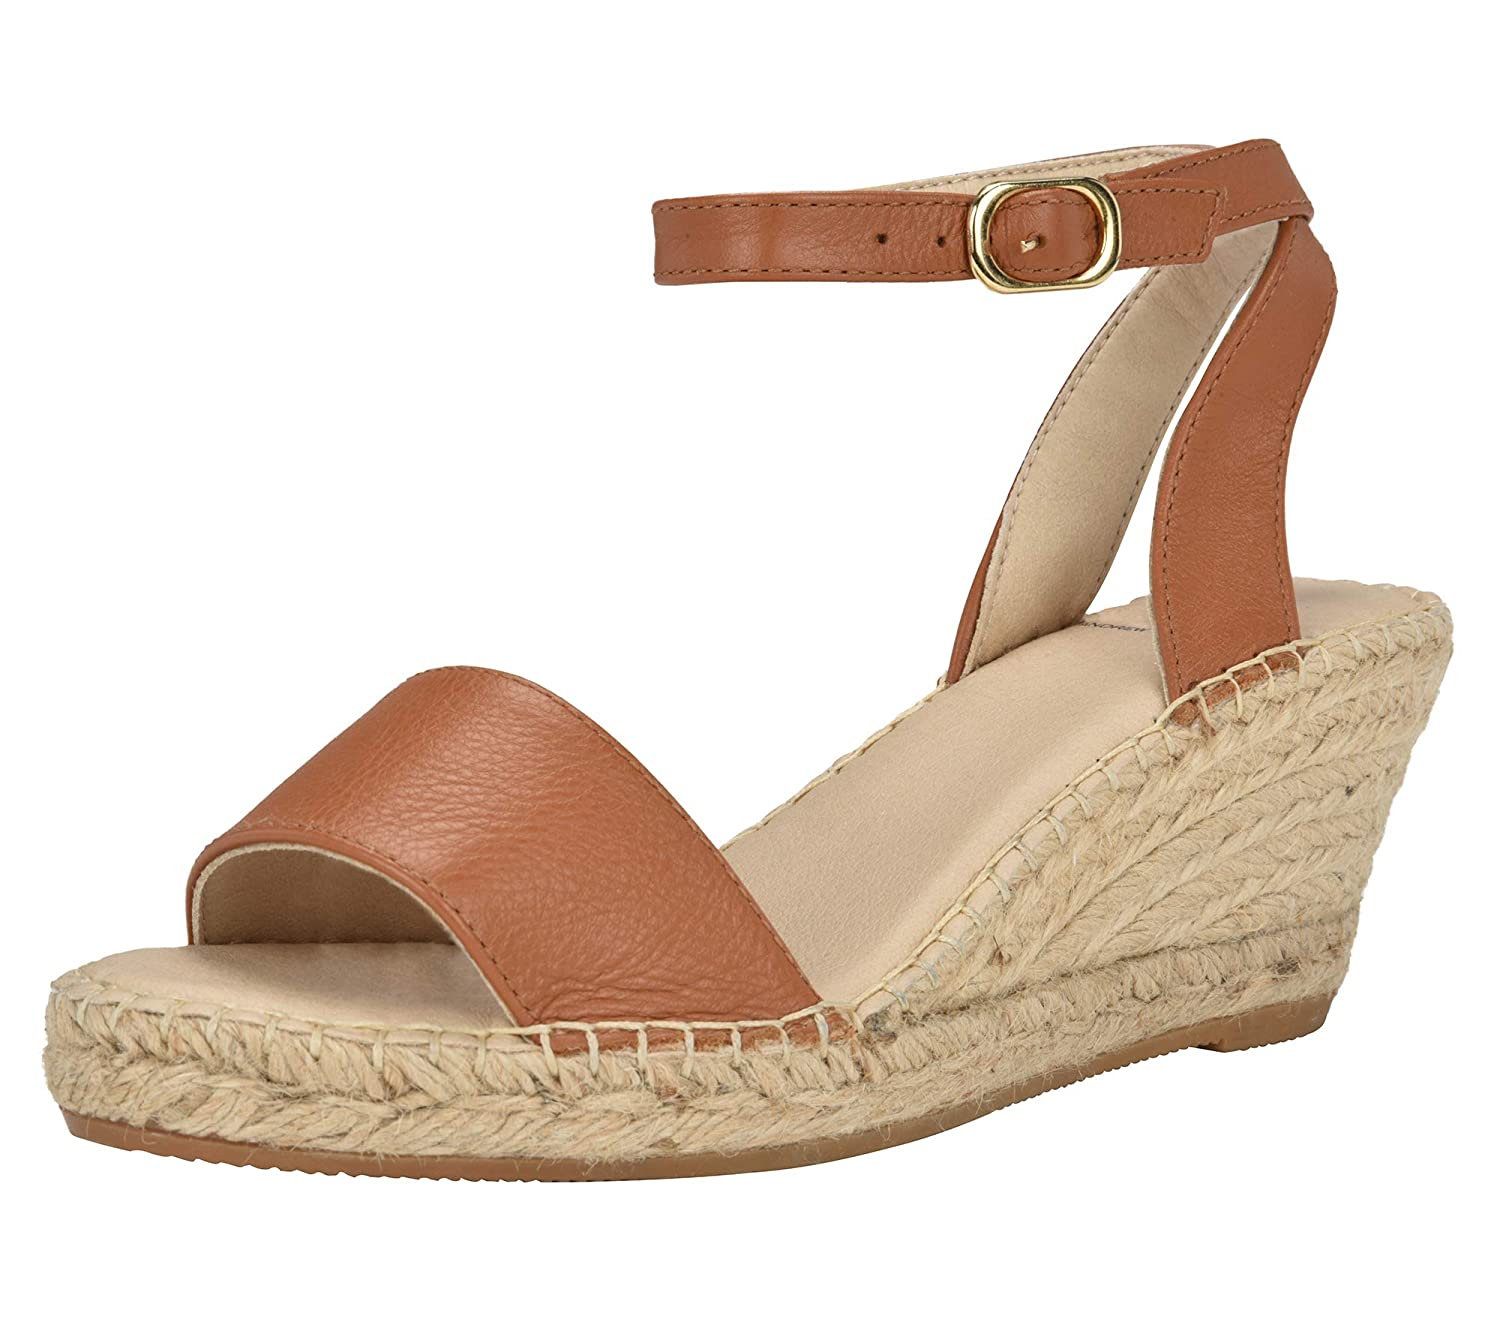 721018047f9 ANDREW STEVENS Leah Espadrille Shoes for Women | Leather Wedge Sandal with  Ankle Strap Buckle Closure and Open Toe, 2.75